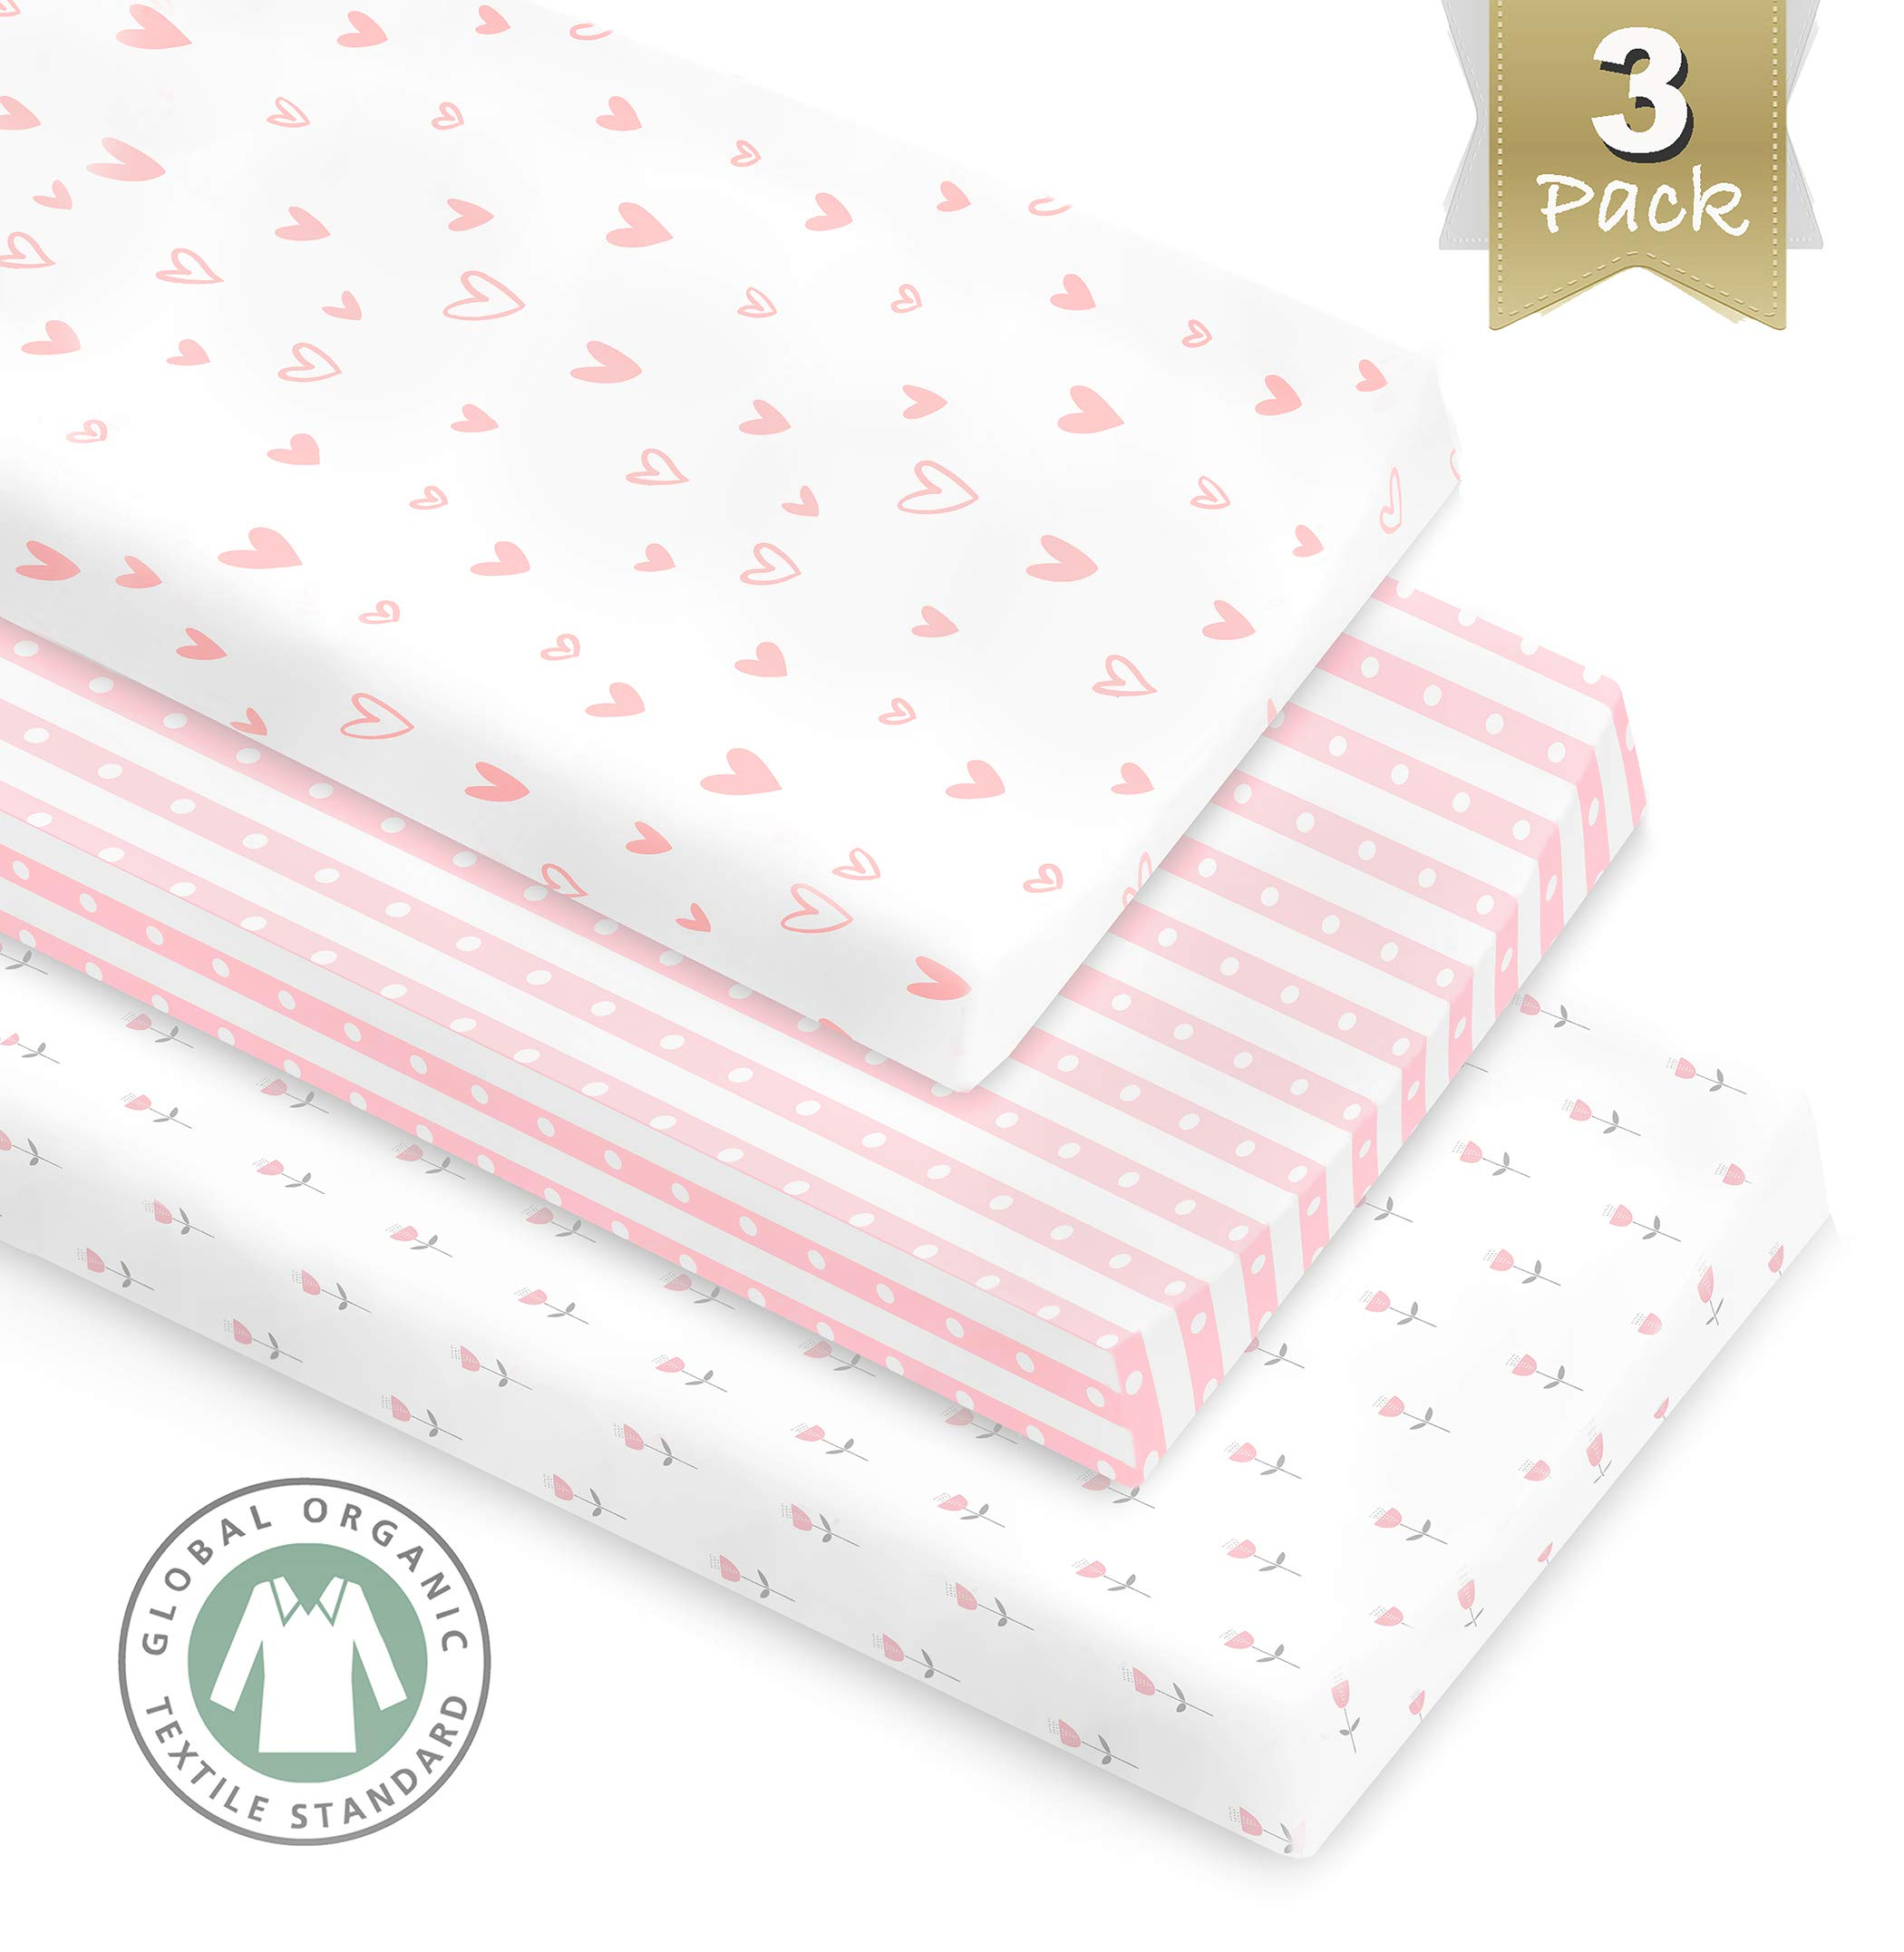 3 Pack GOTS Certified Organic Cotton Changing Pad Covers or Cradle Sheet for Girl, with Safety Strap Holes by Cambria Baby